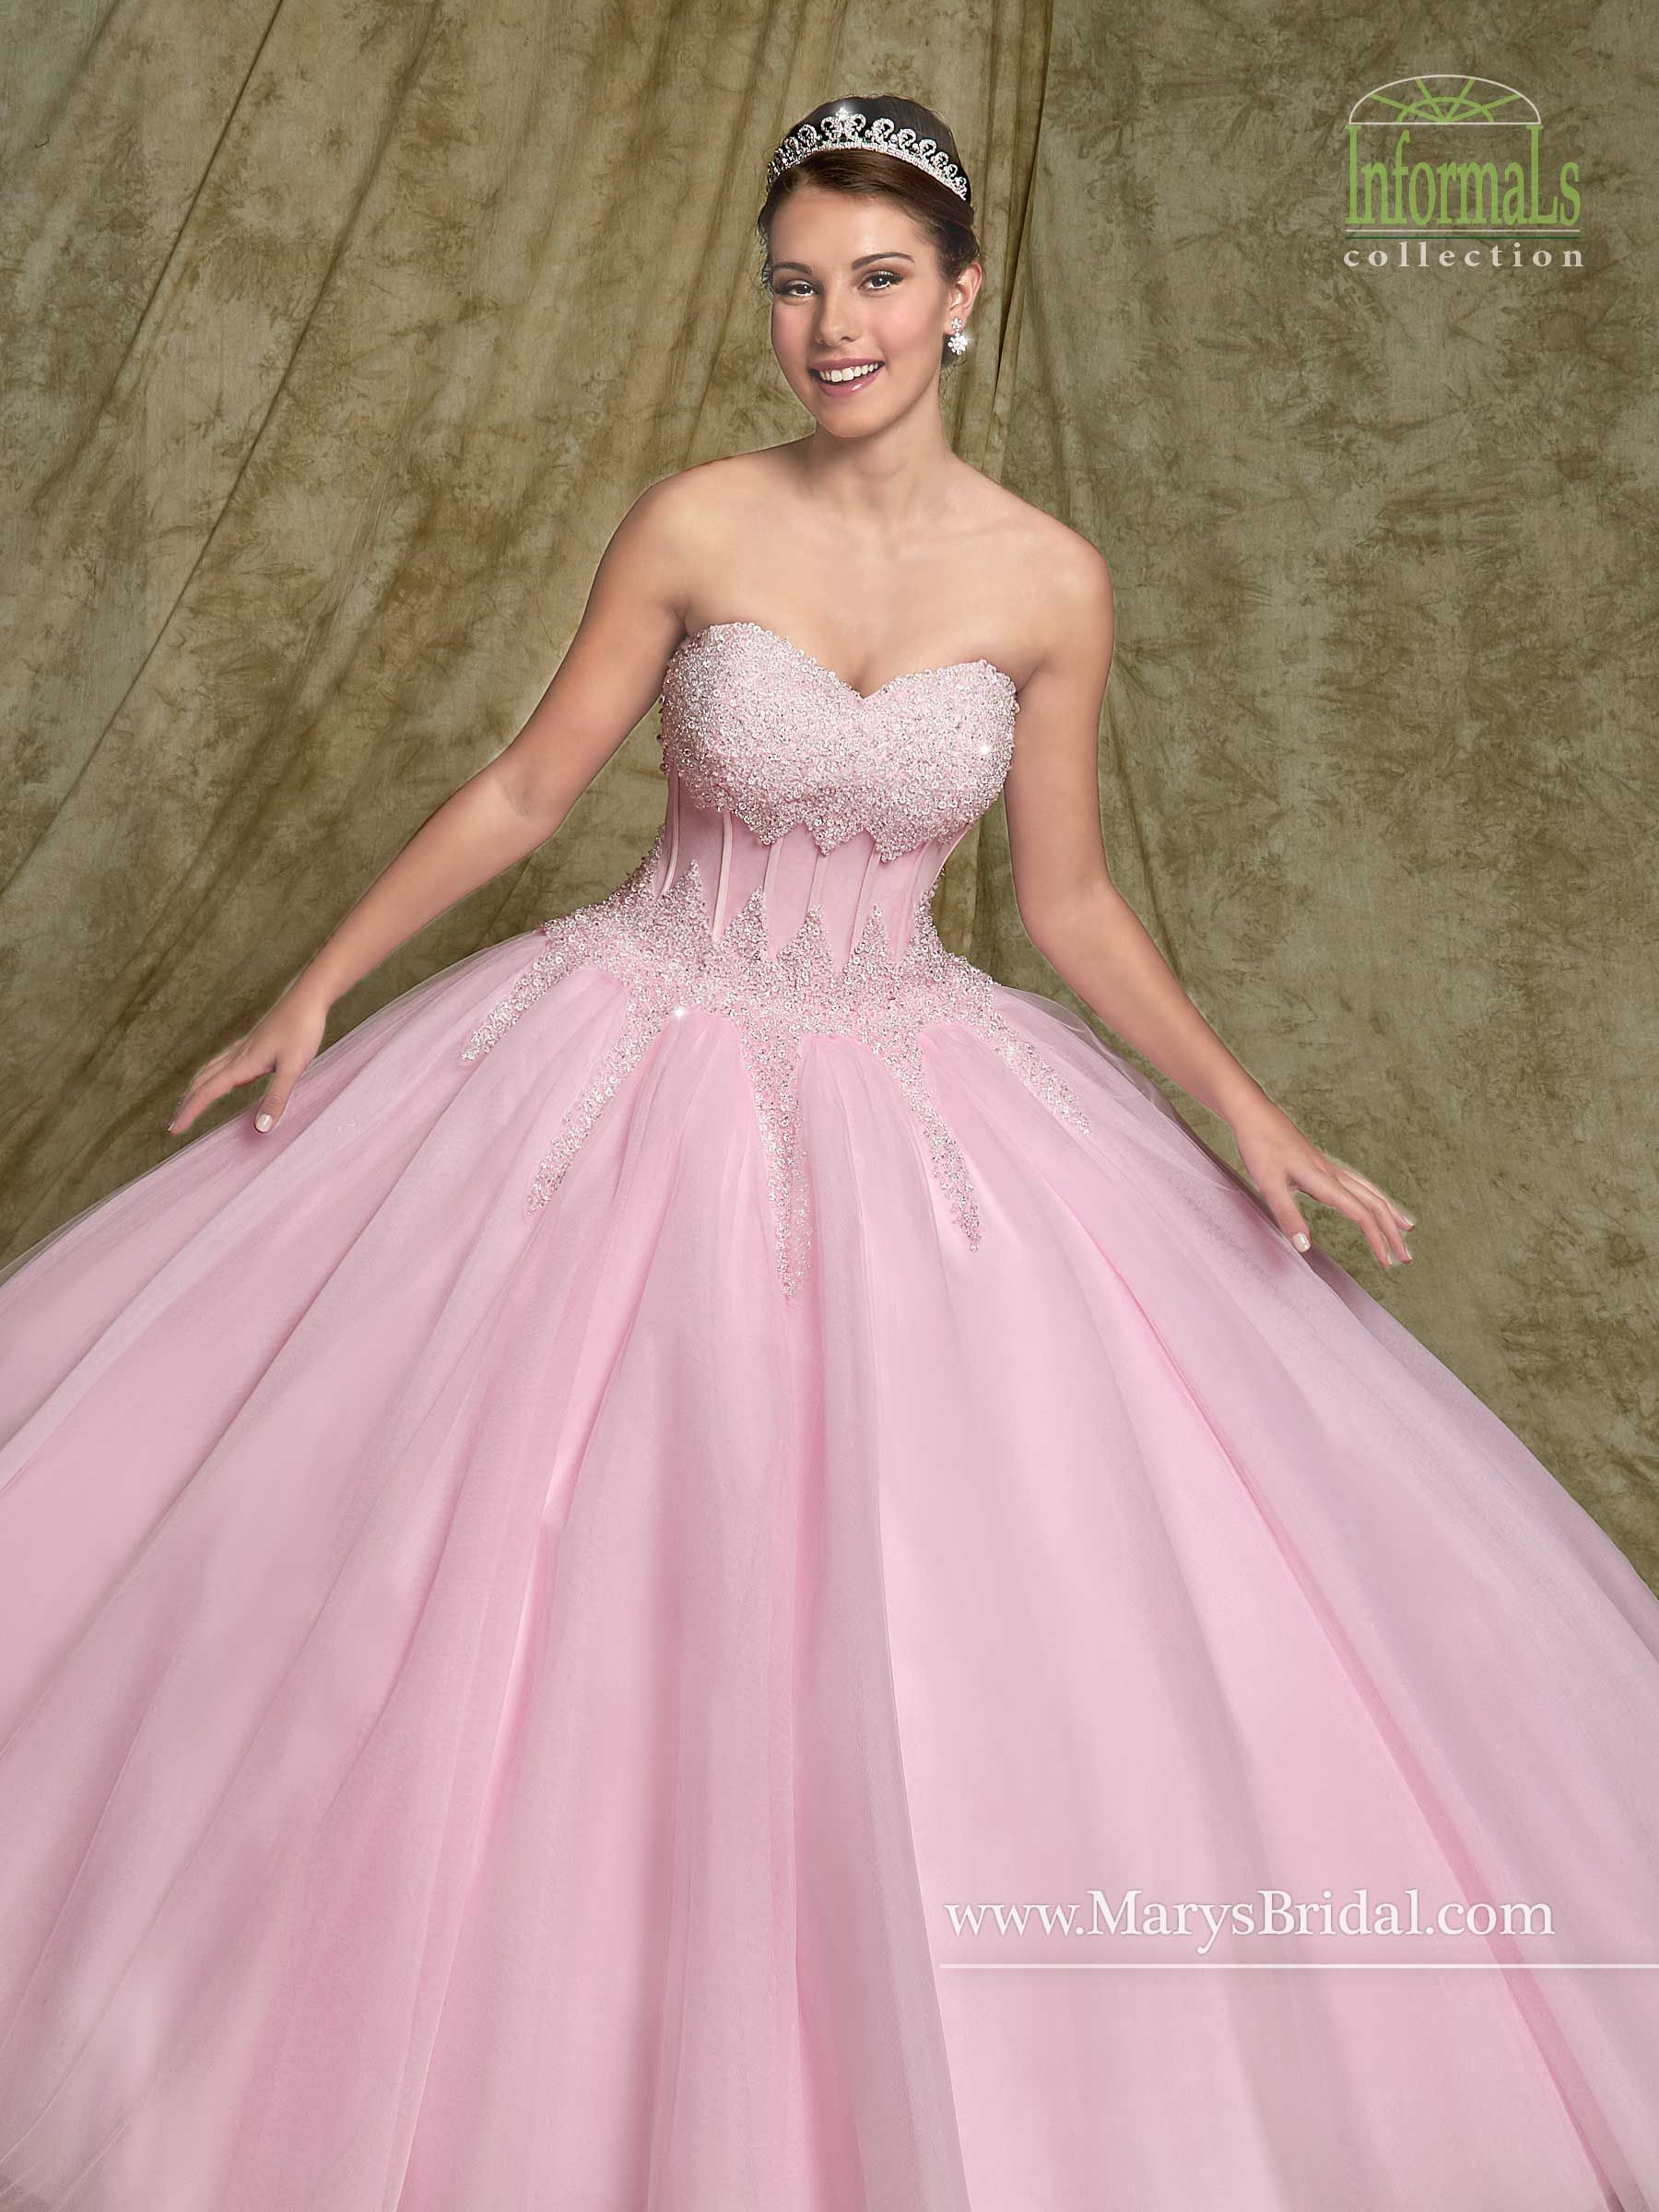 Style 2B810 | My style | Pinterest | Bridal gowns, Wedding dress and ...